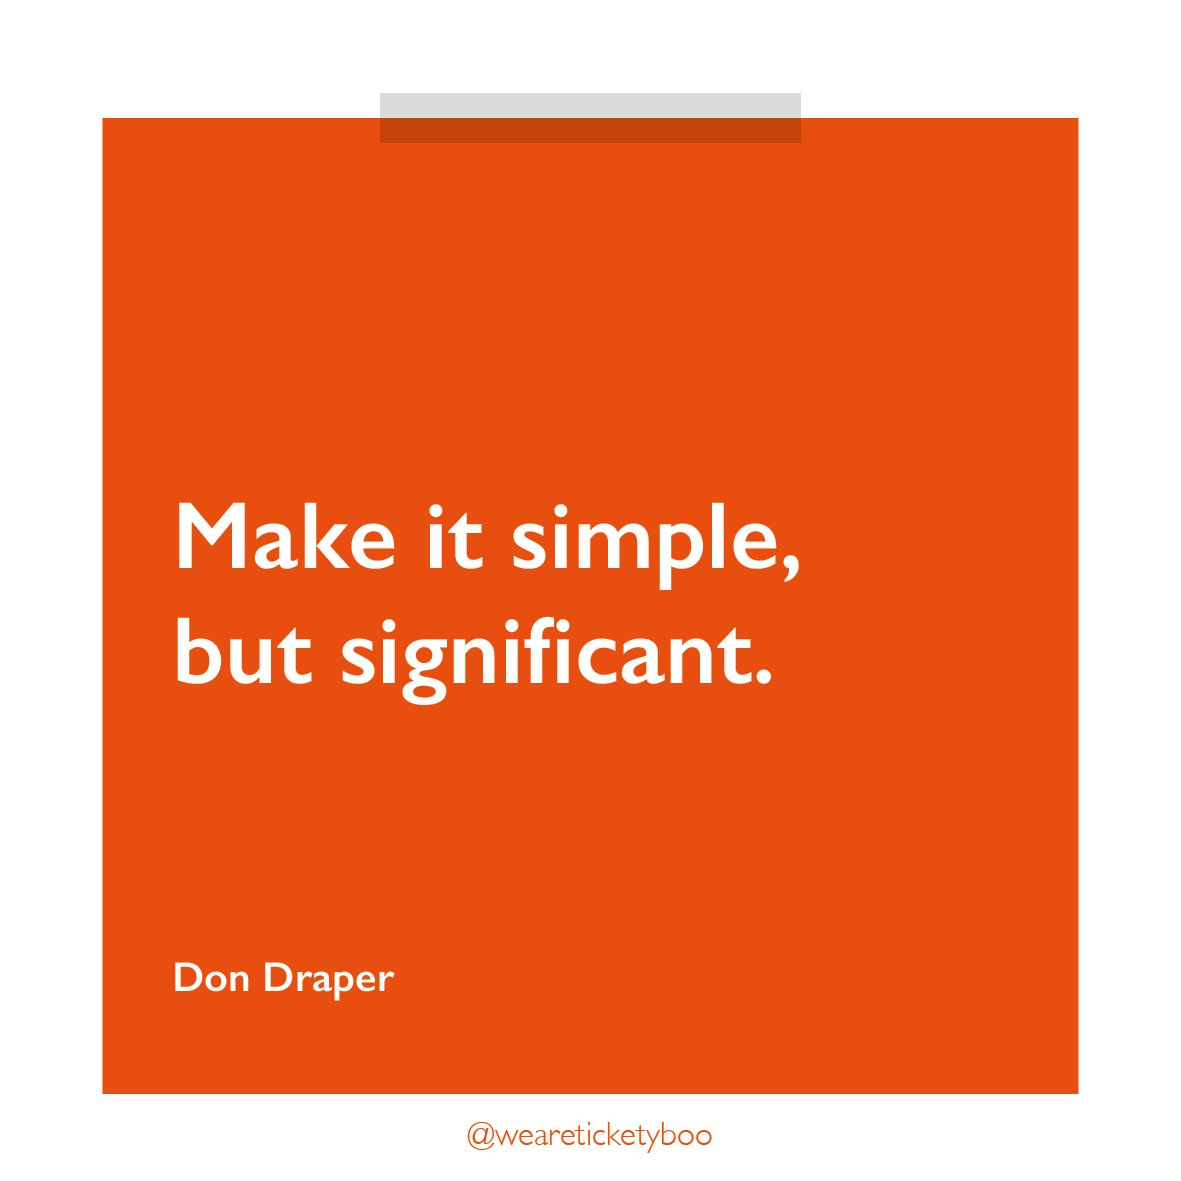 The wise words of Don Draper  #design #advertising #topquotes <br>http://pic.twitter.com/X9yJ35L5nc